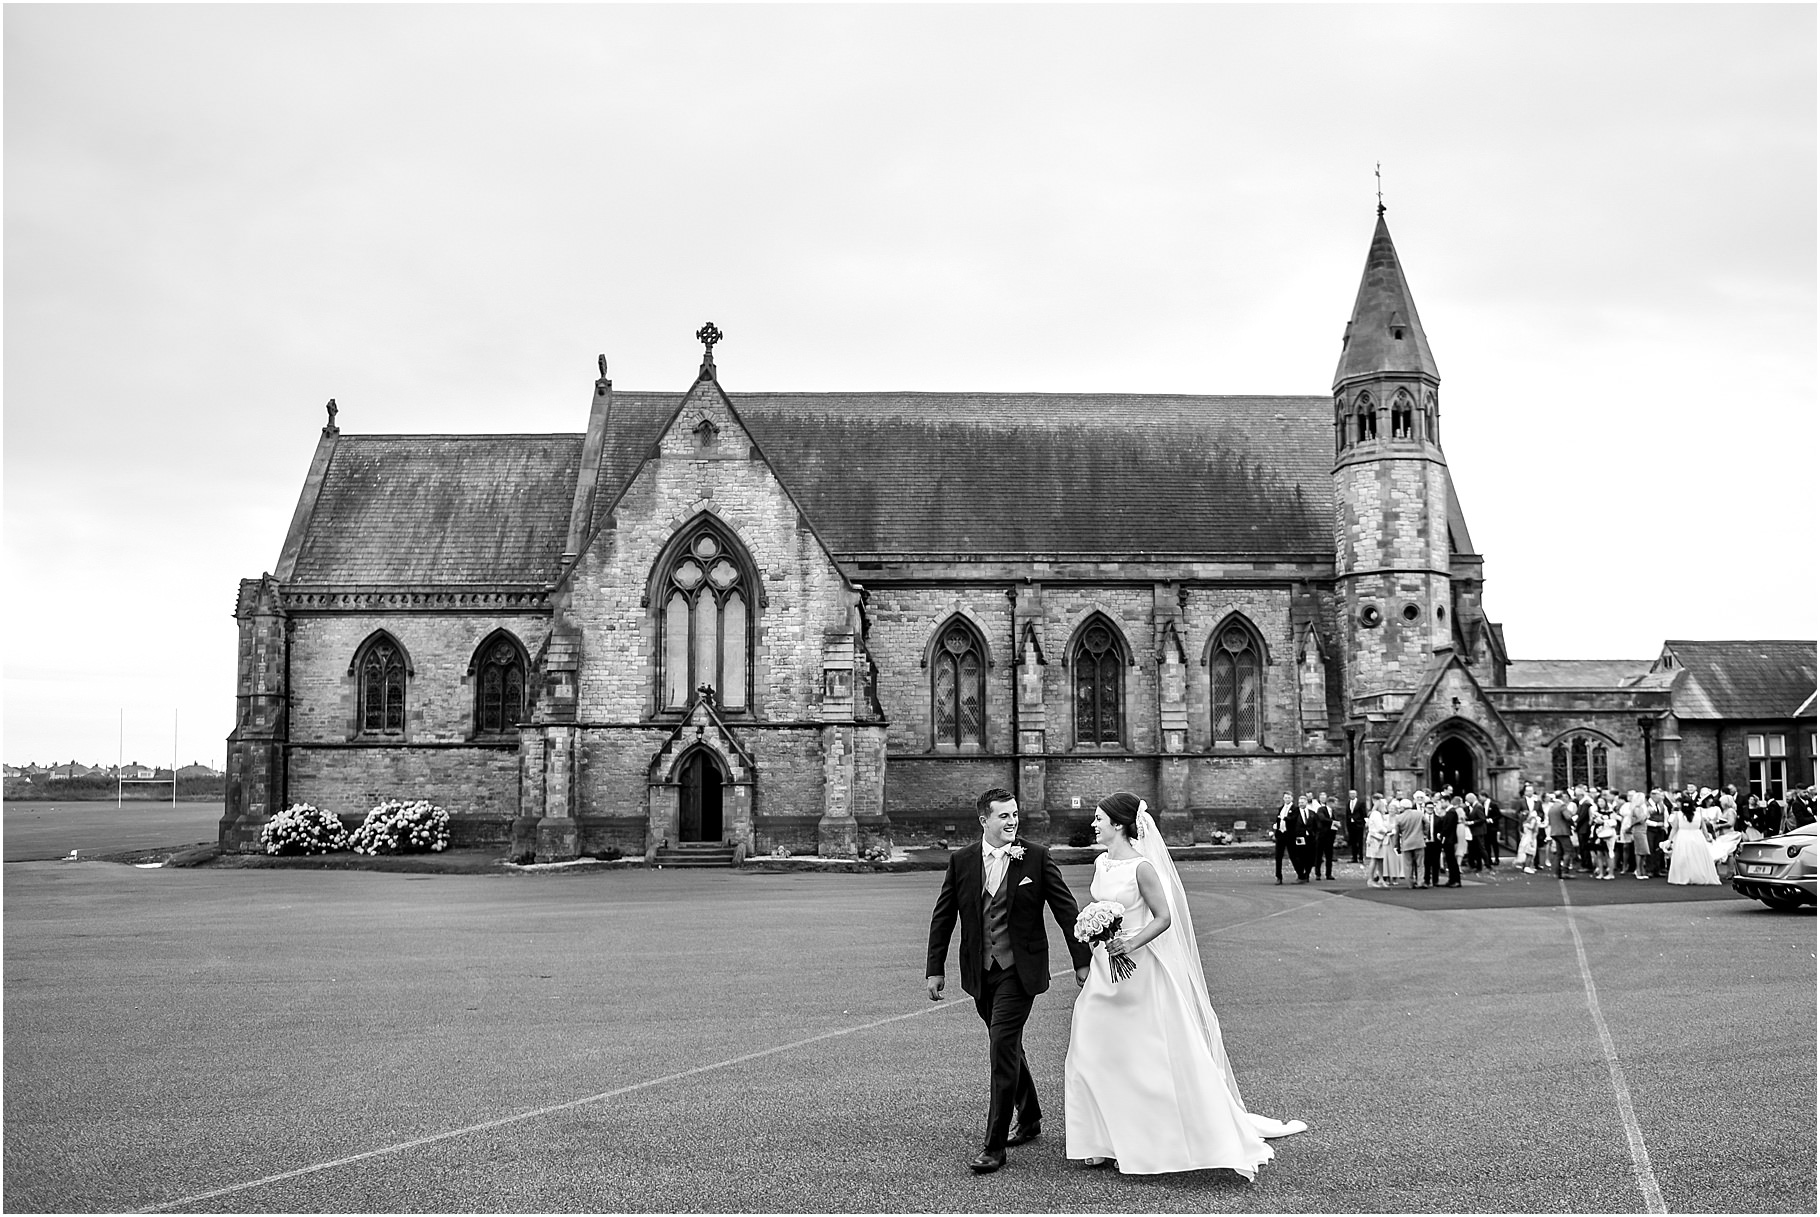 rossall-school-wedding-photography-041.jpg